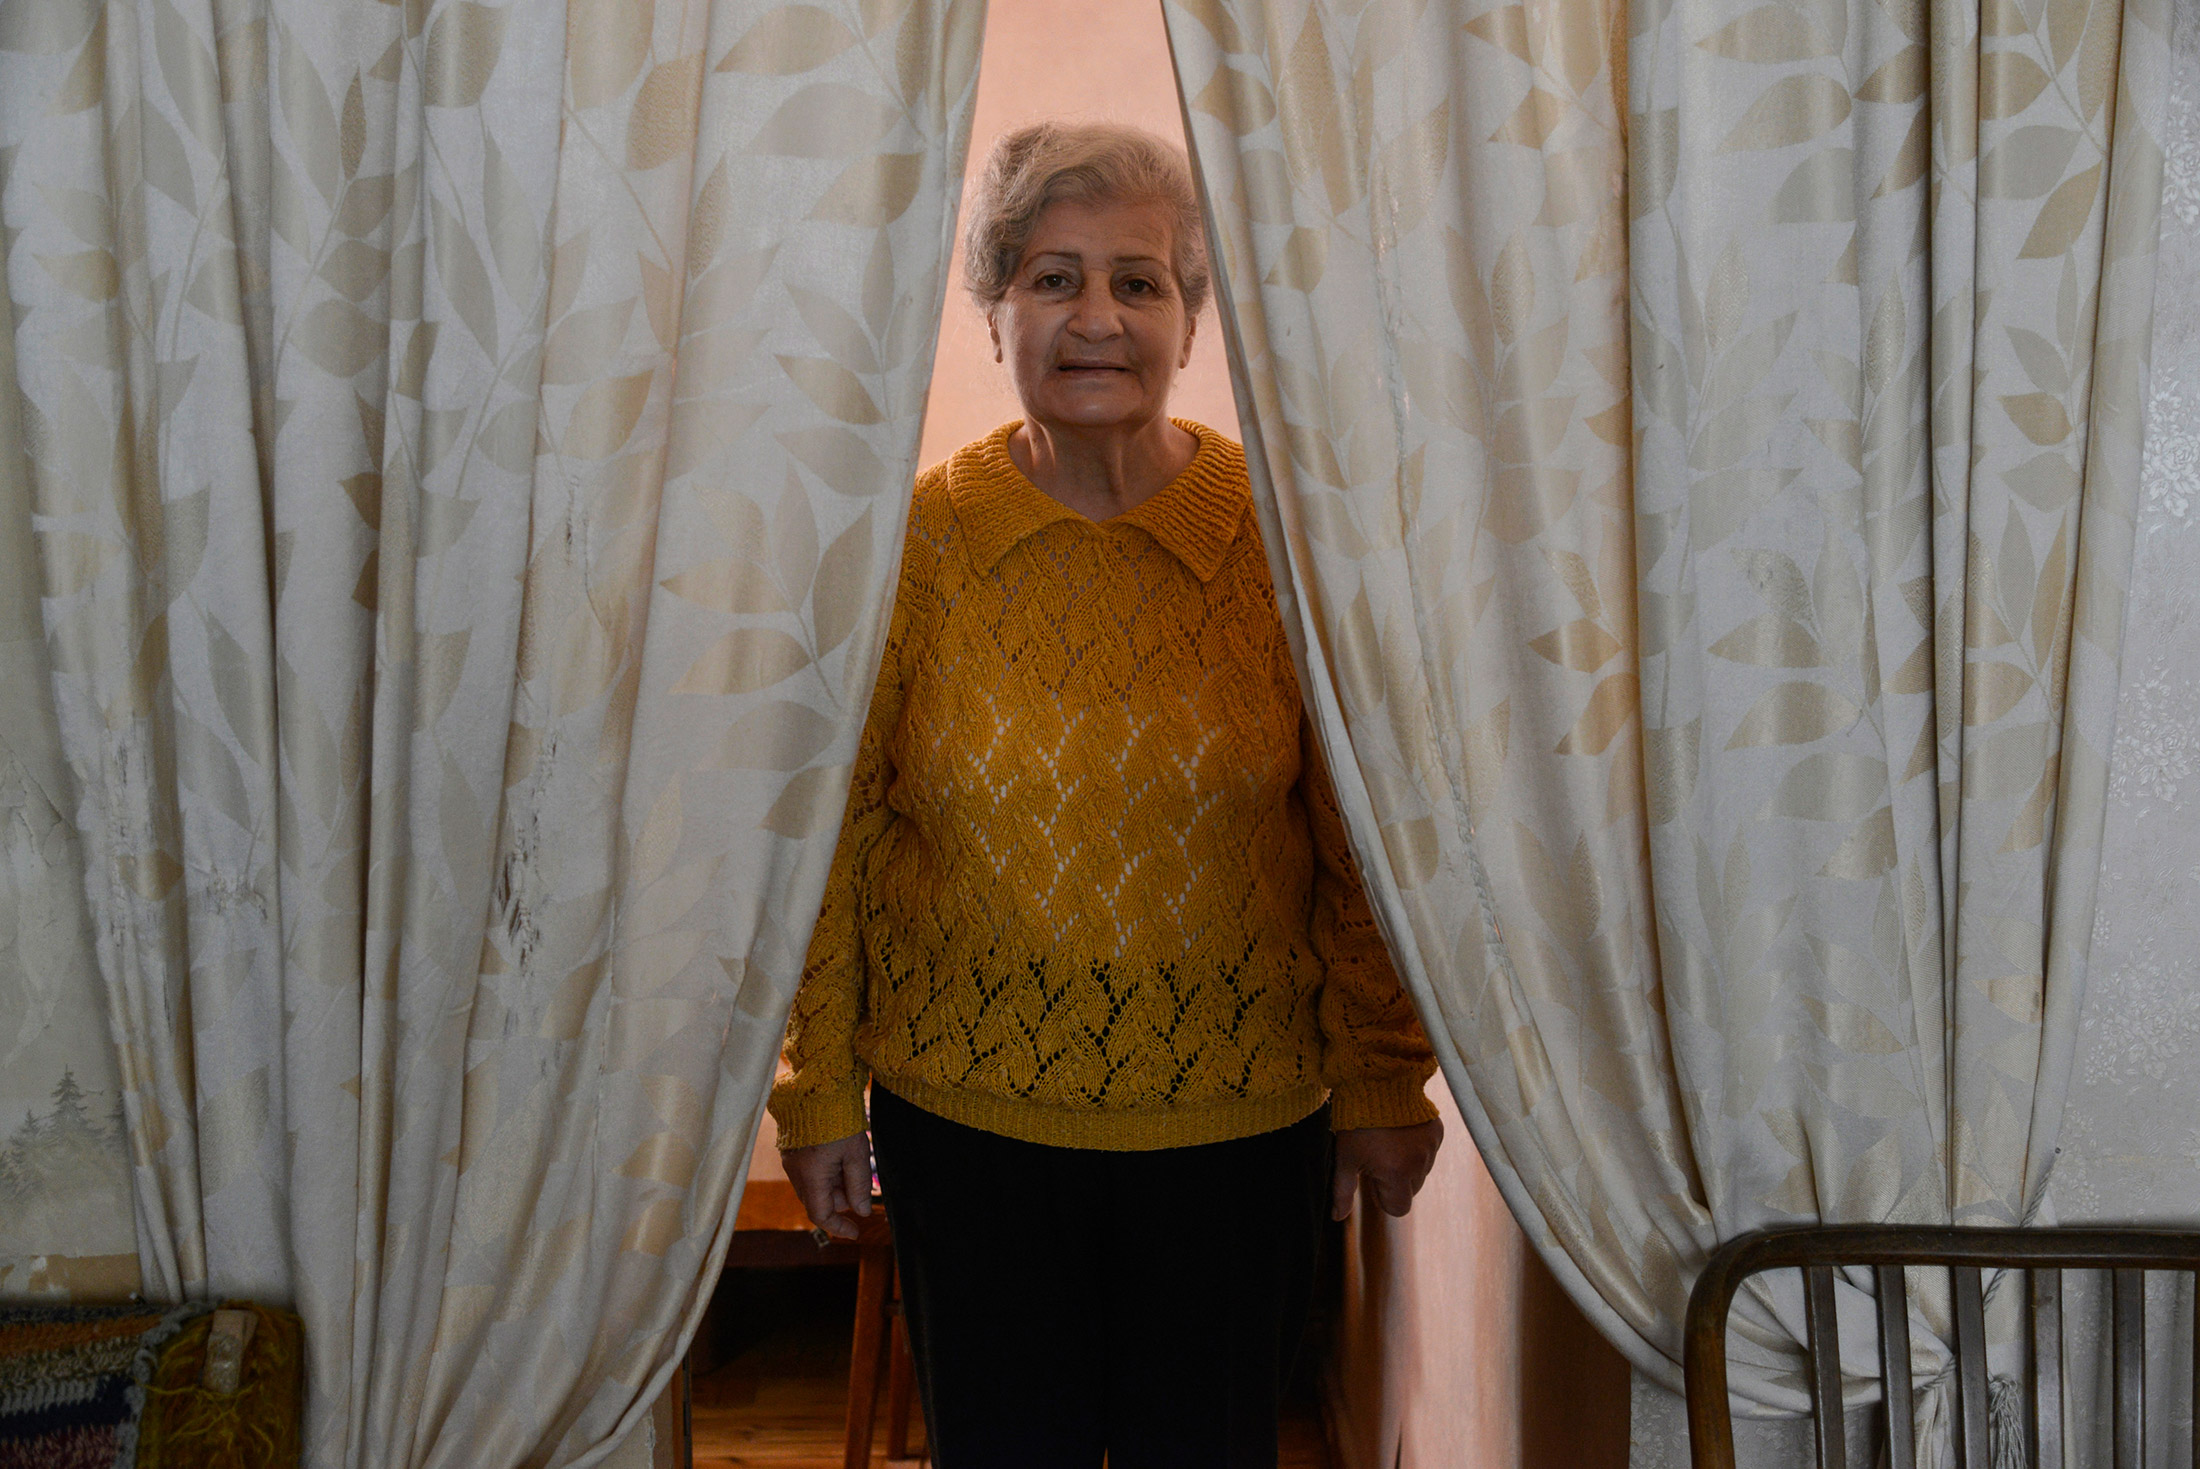 Margo Avetyan, 71, is one of Sveta's 17 clients. The pandemic has made it difficult for both Sveta a ...